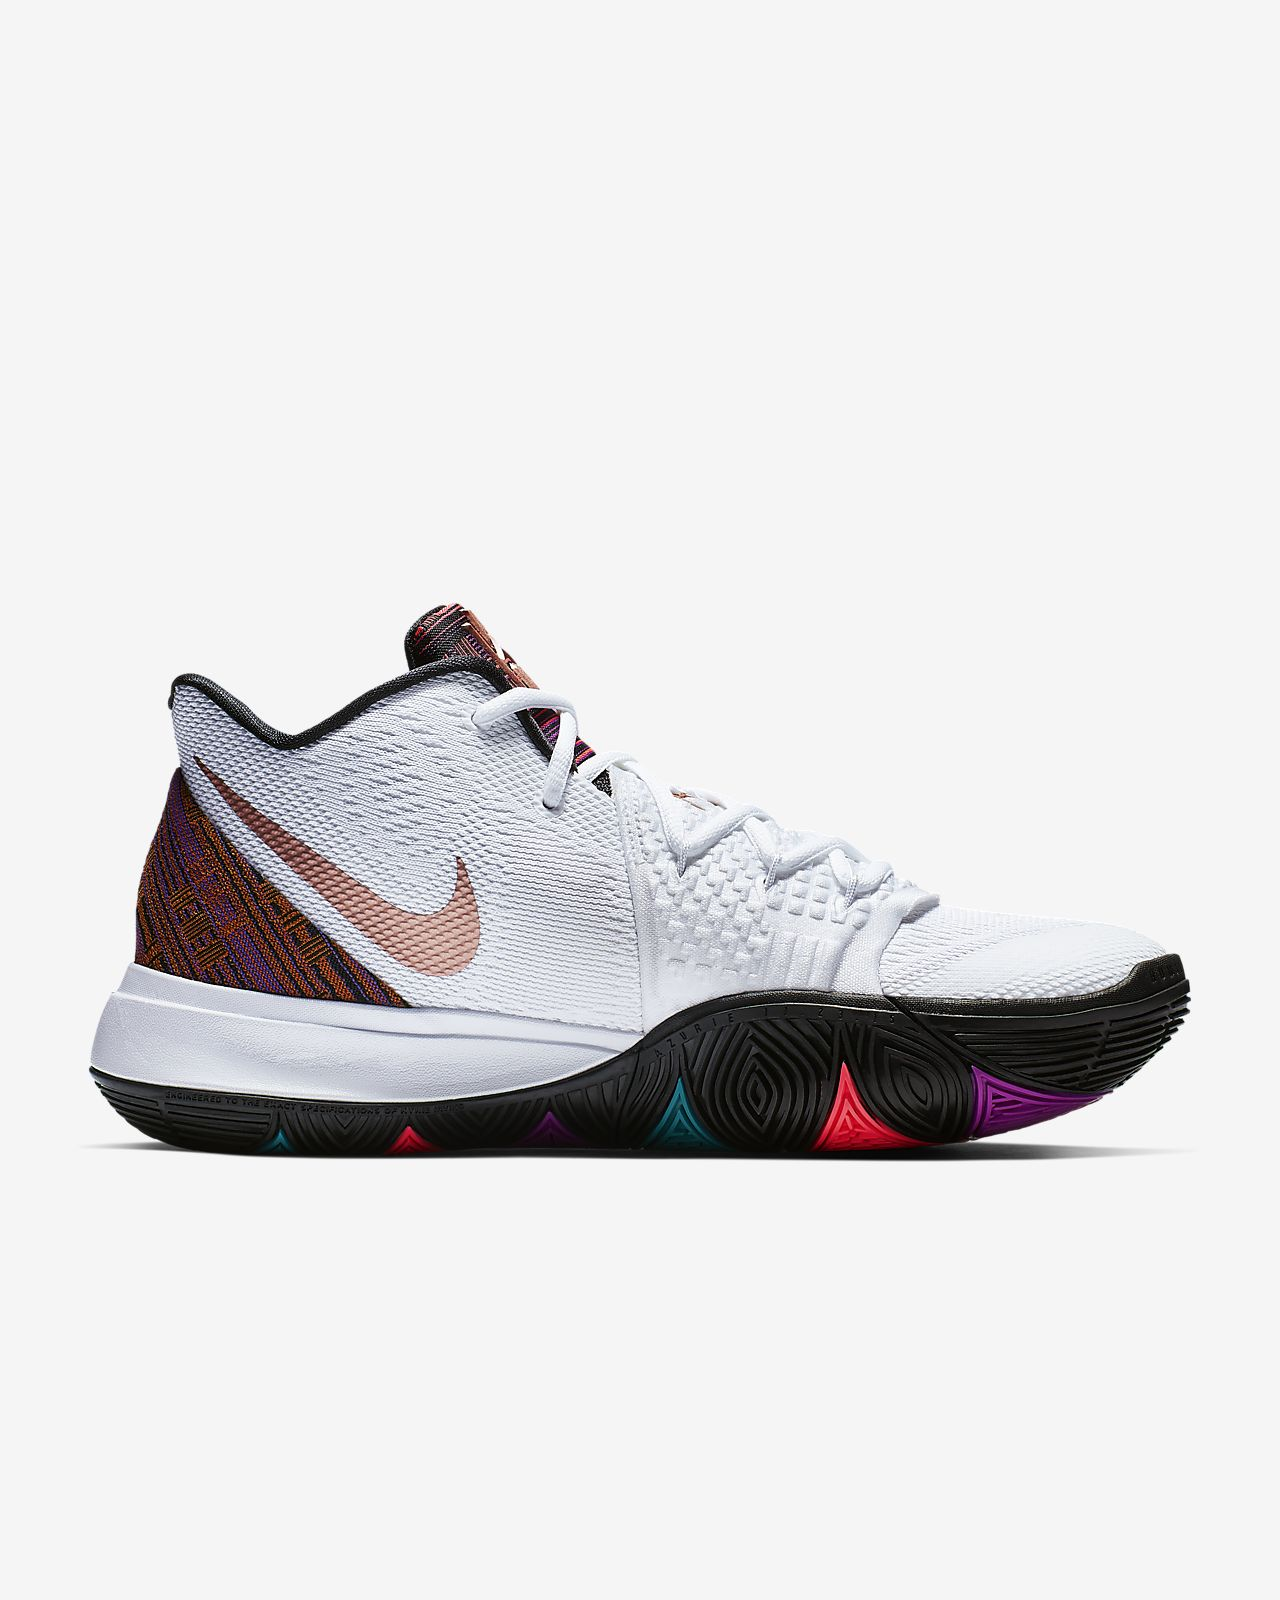 outlet store b4413 a83a2 ... Kyrie 5 BHM Basketball Shoe